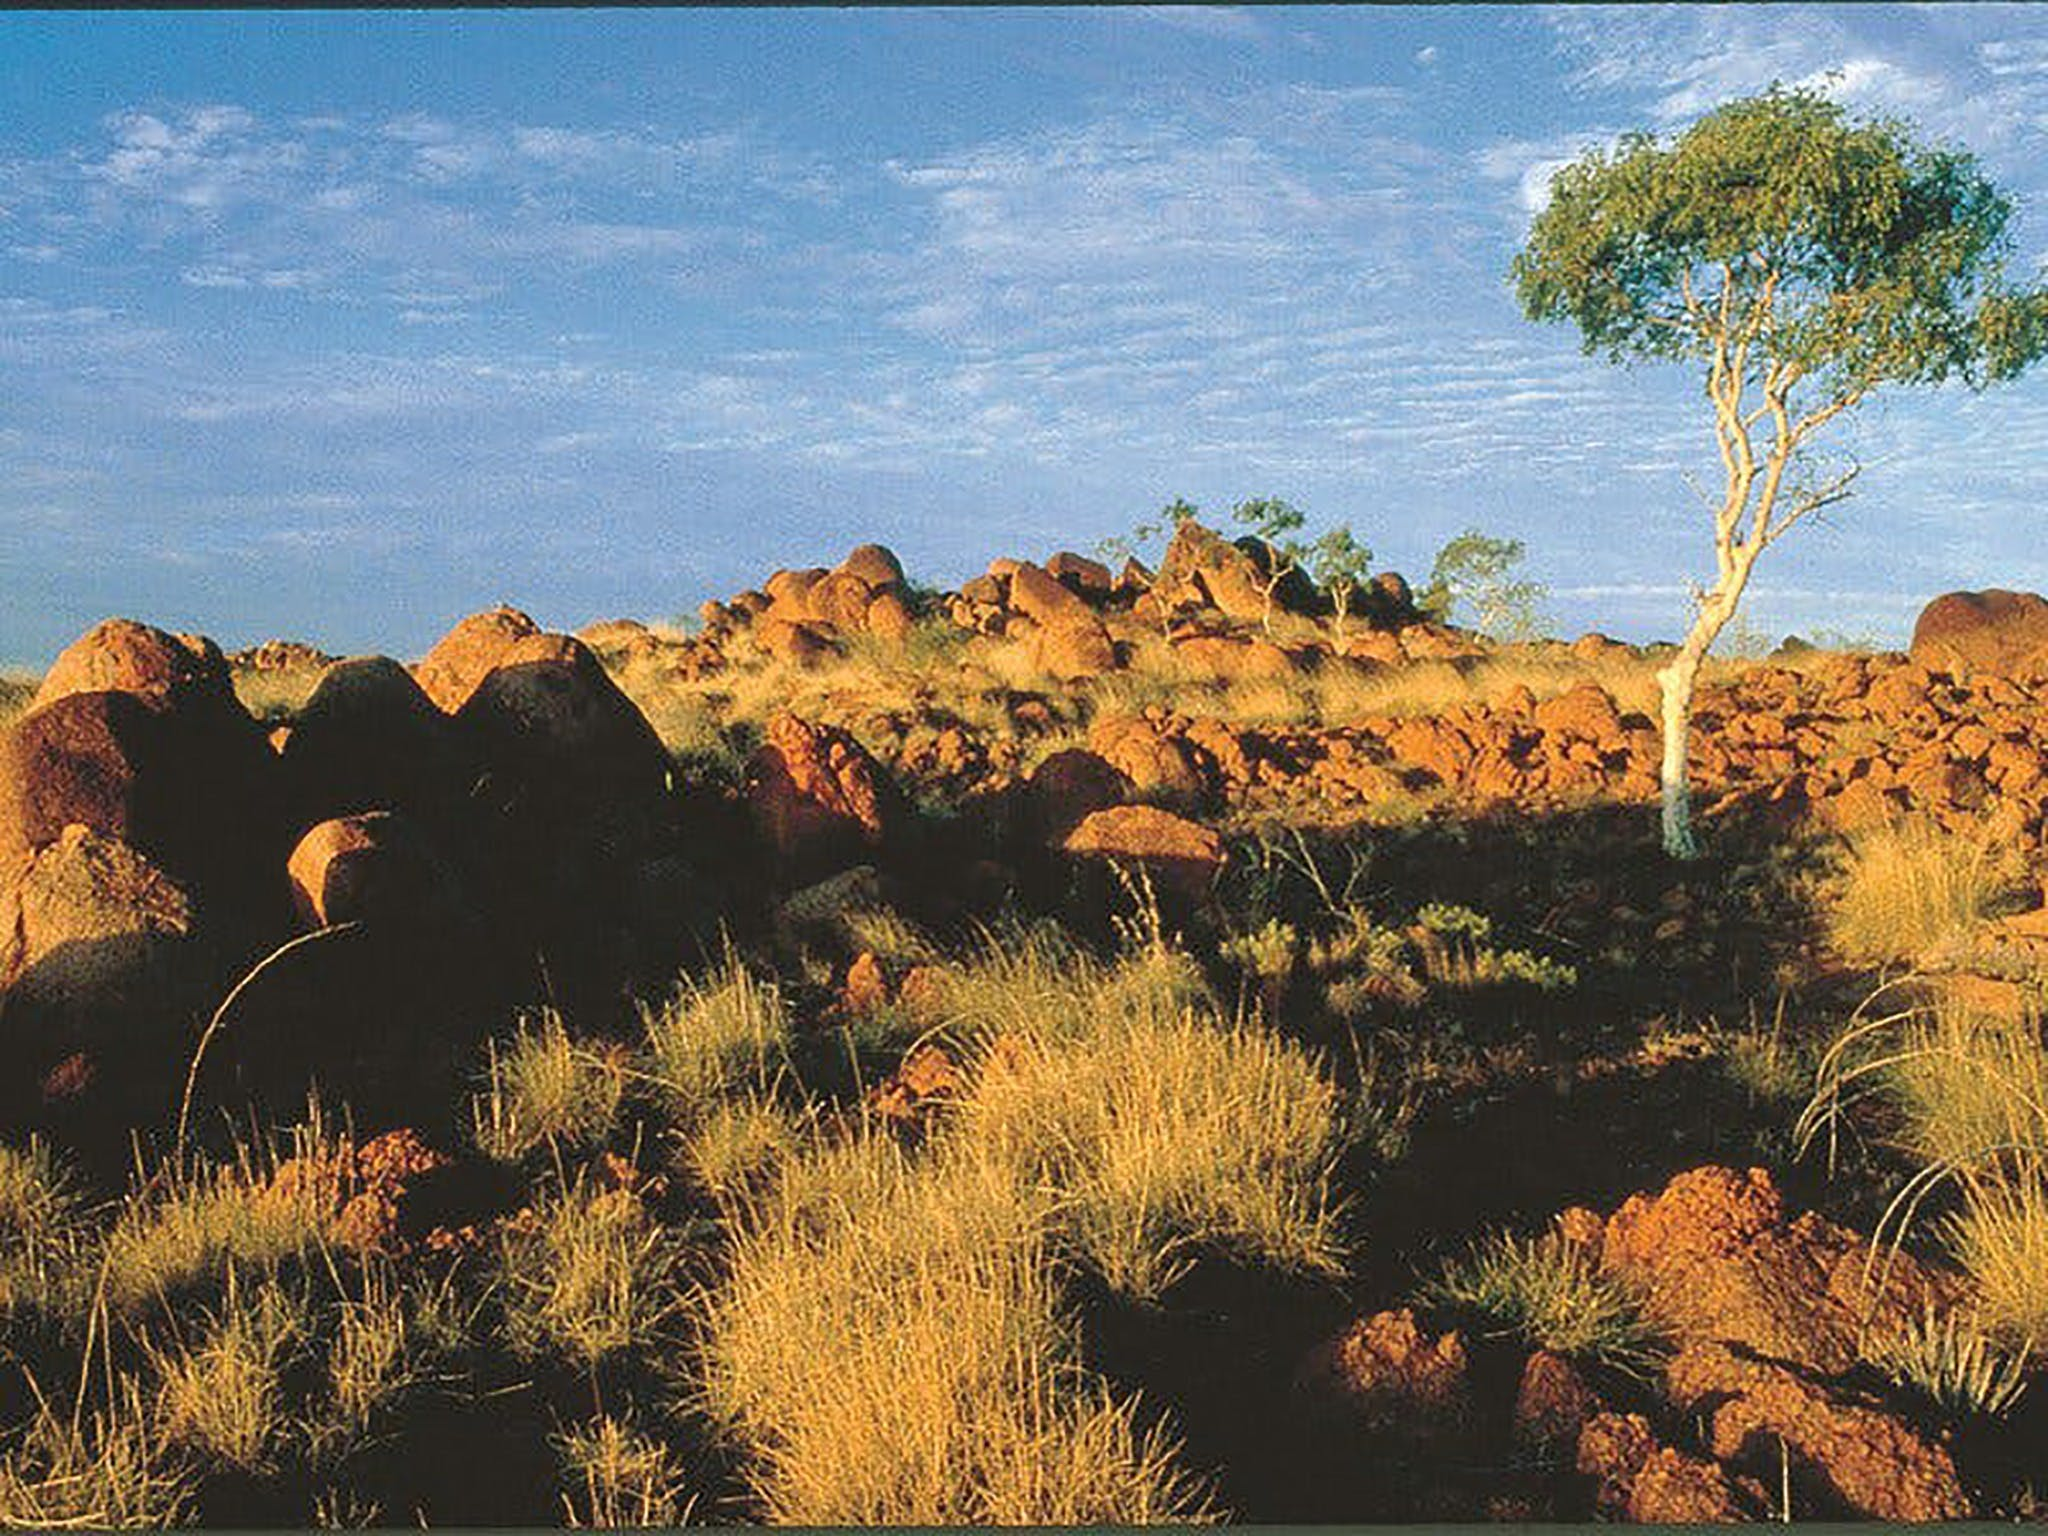 Kunjarra/The Pebbles - Accommodation Cairns